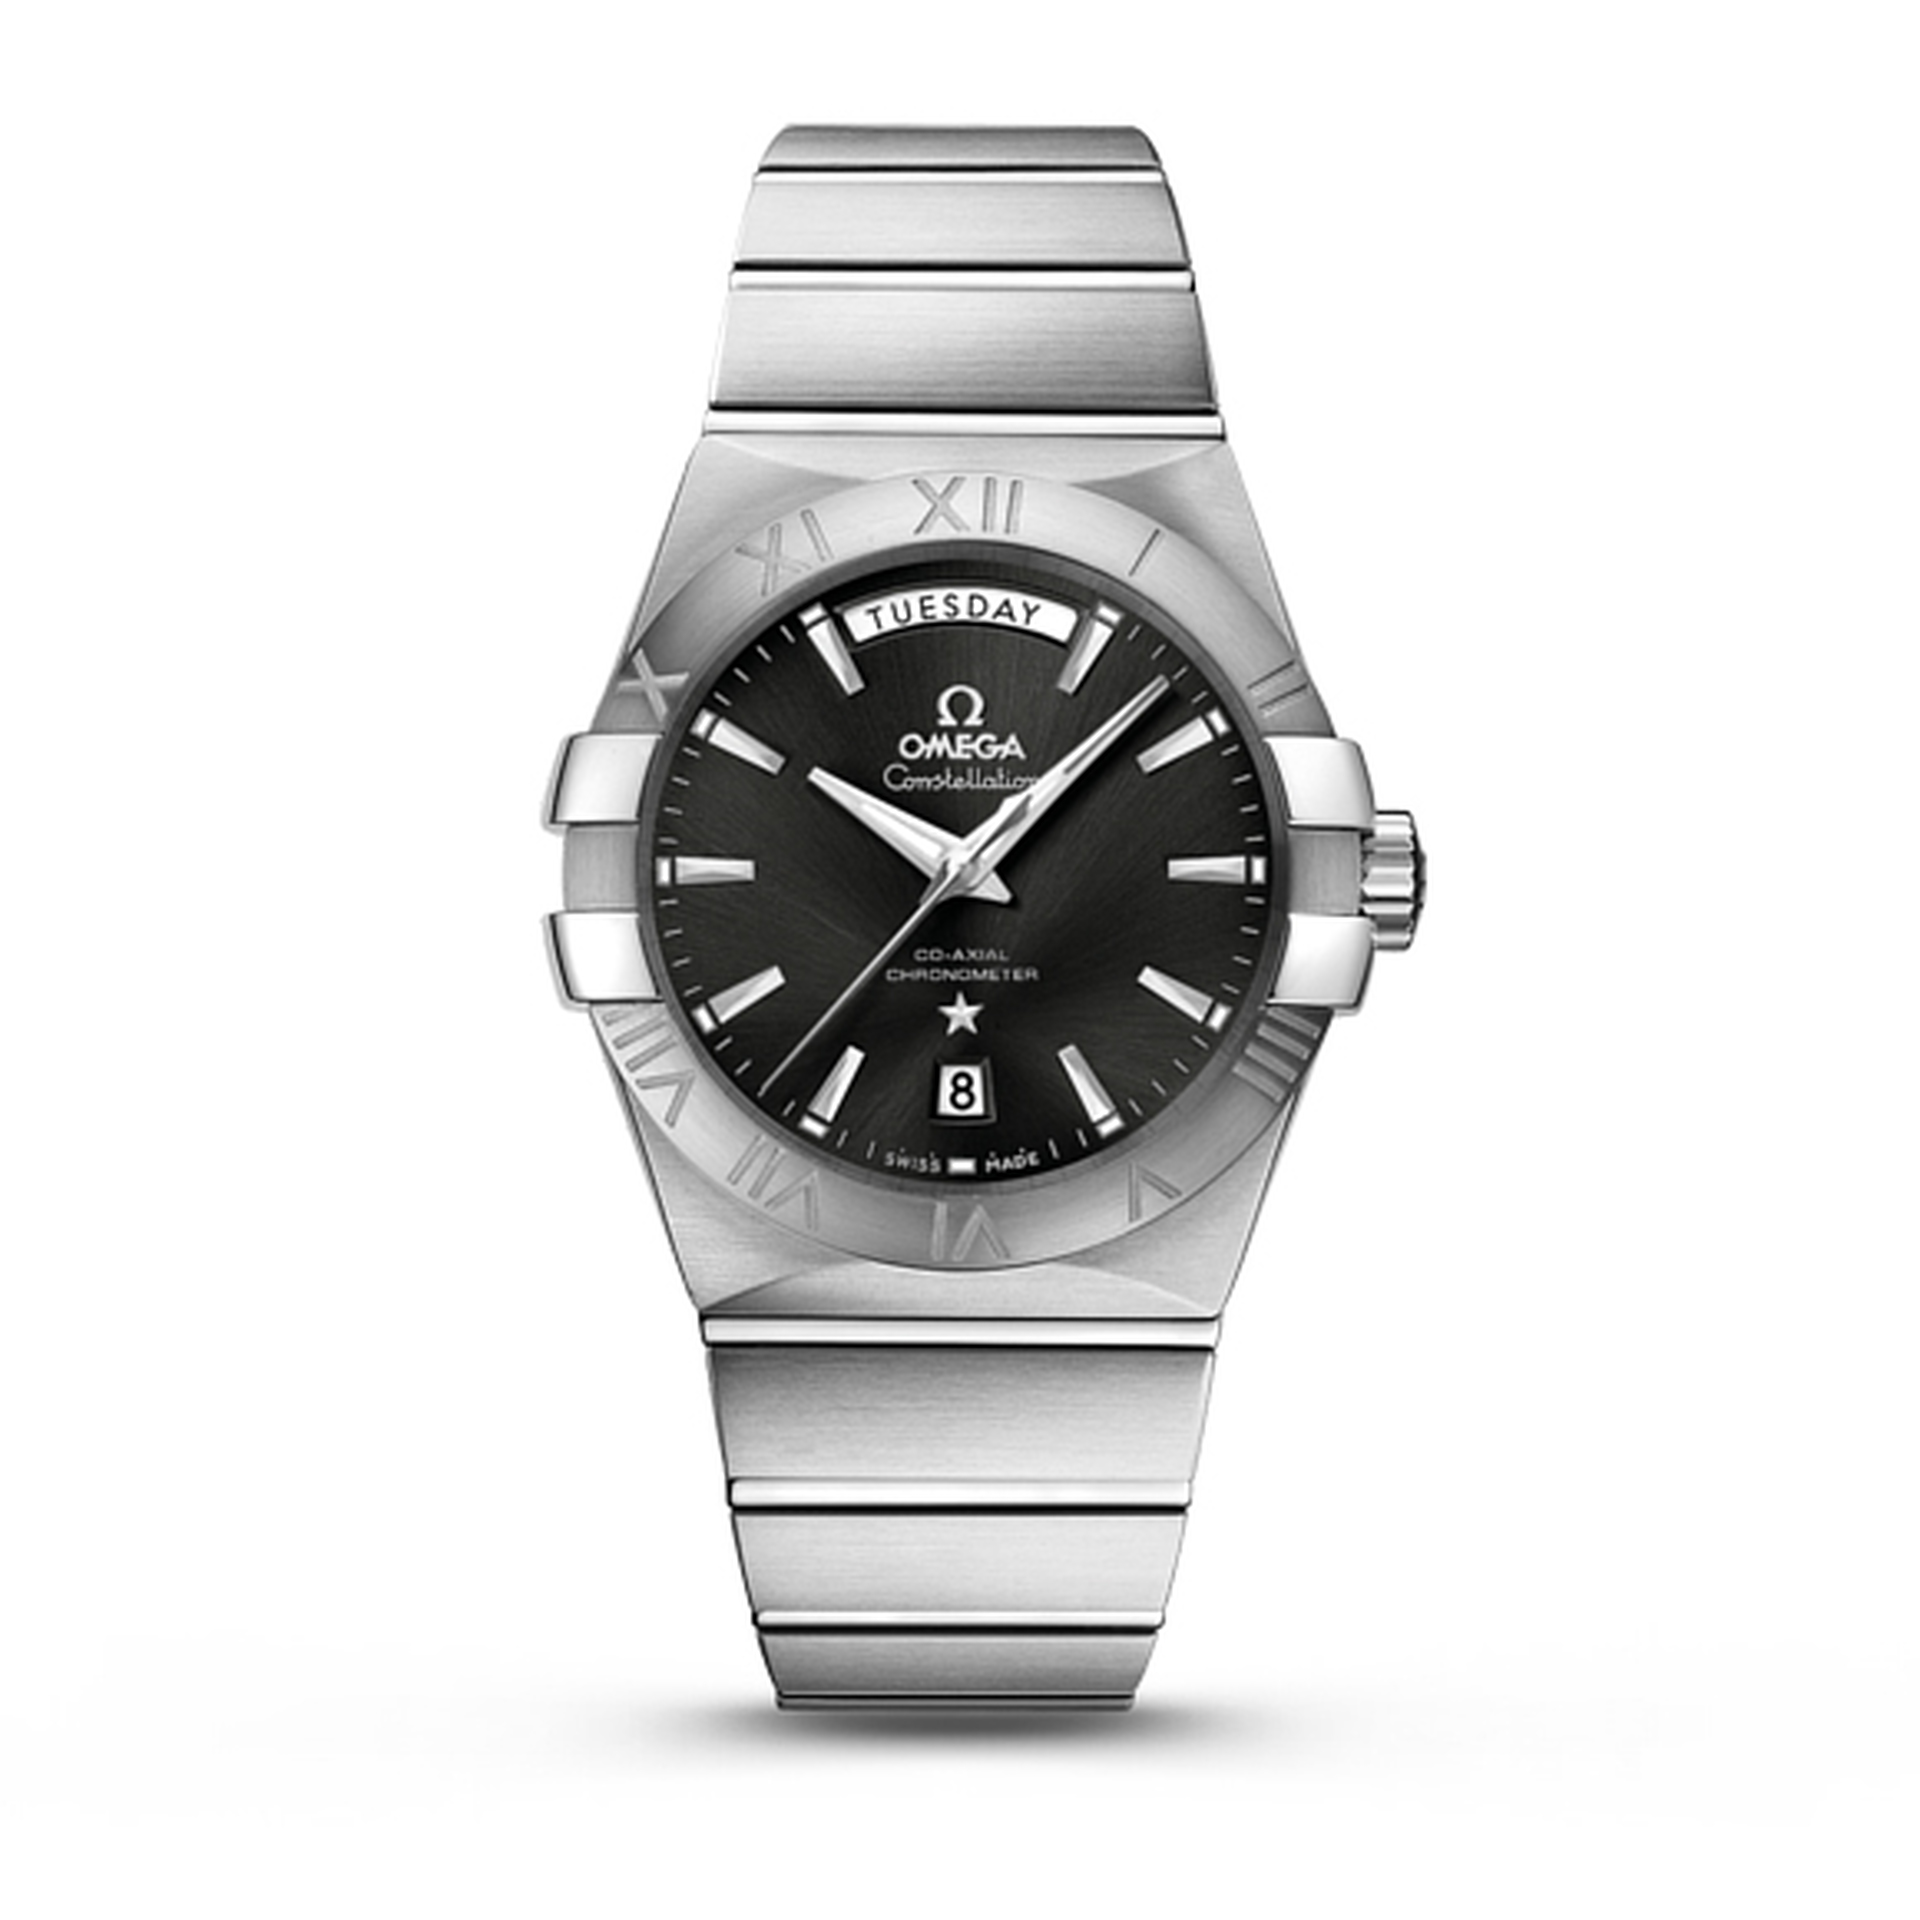 OMEGA Constellation Day Date Stainless Steel Automatic Watch